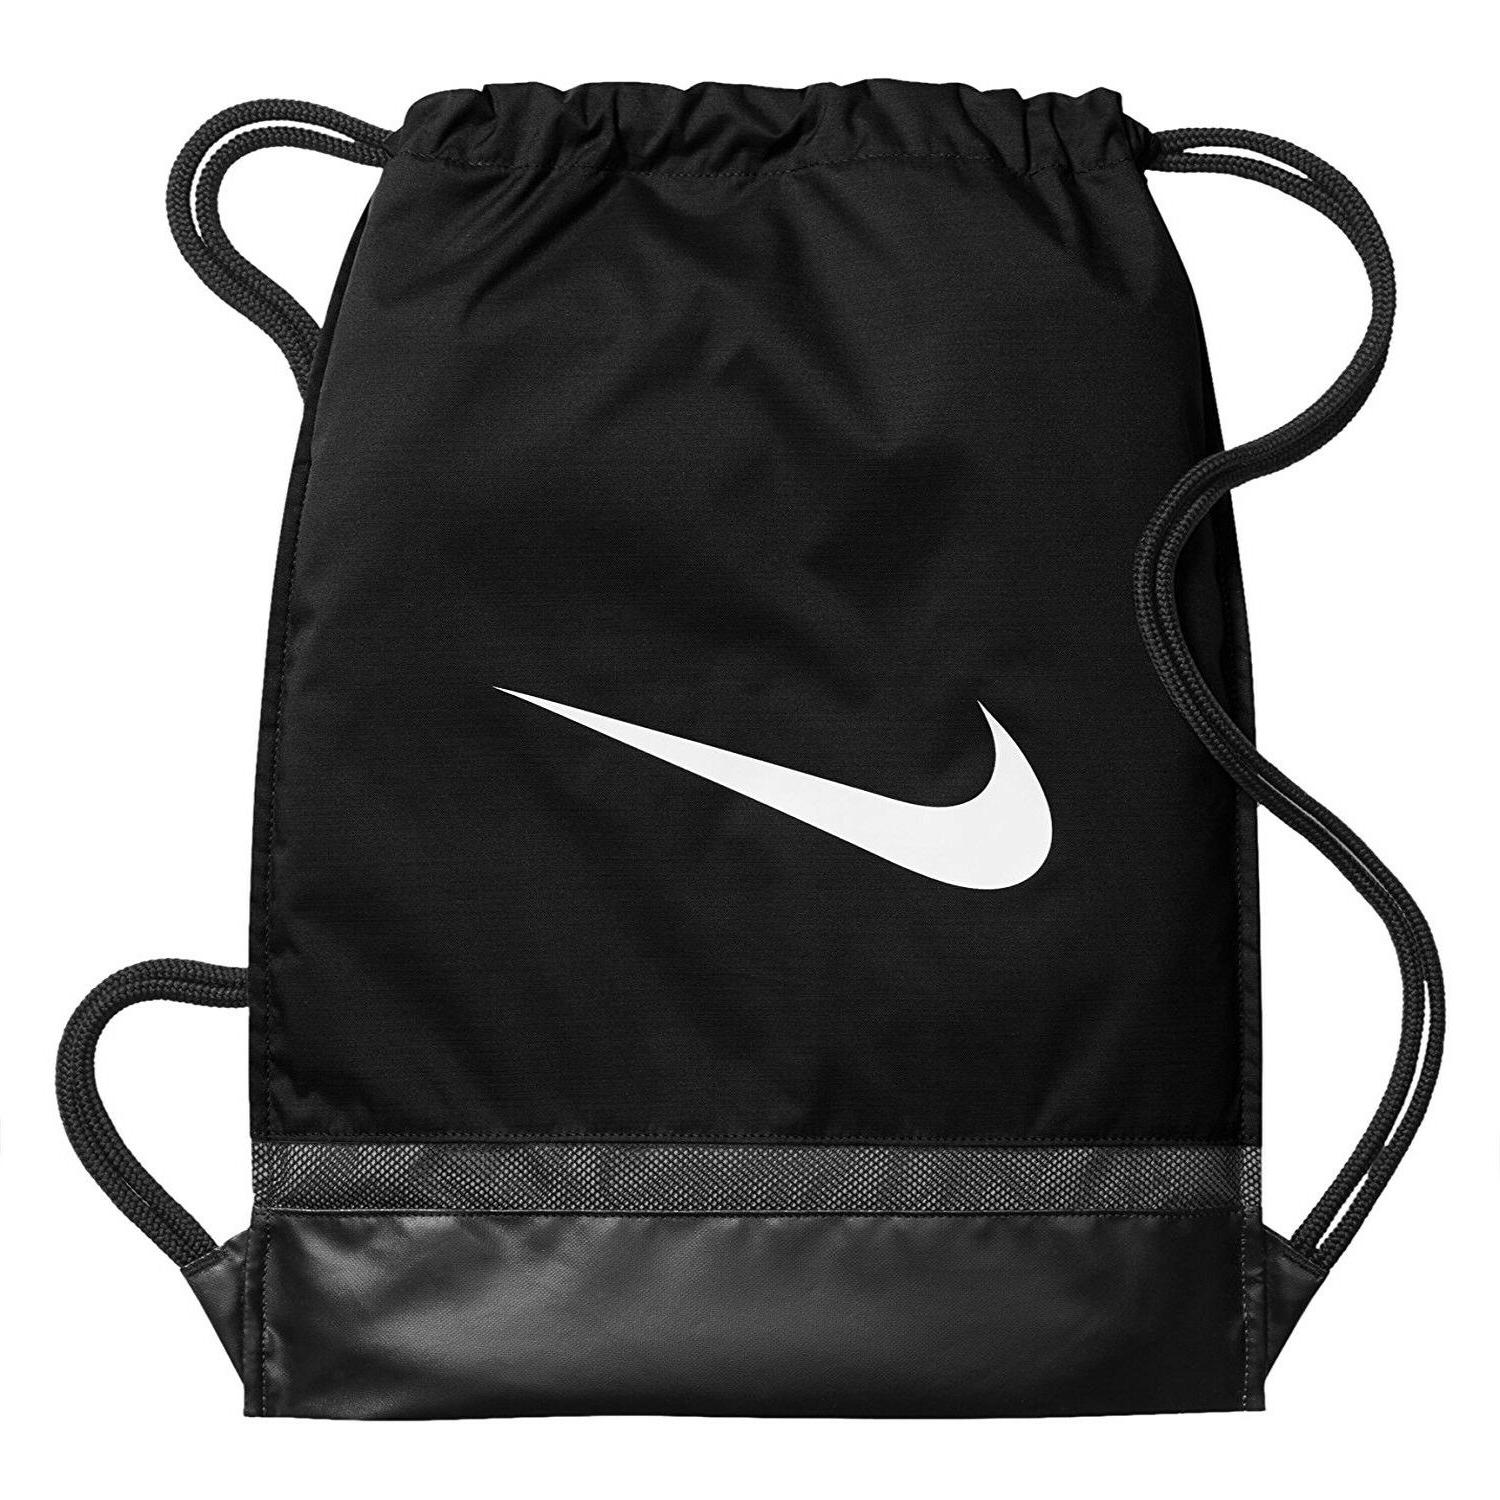 training gymsack drawstring black backpack sport sackpack